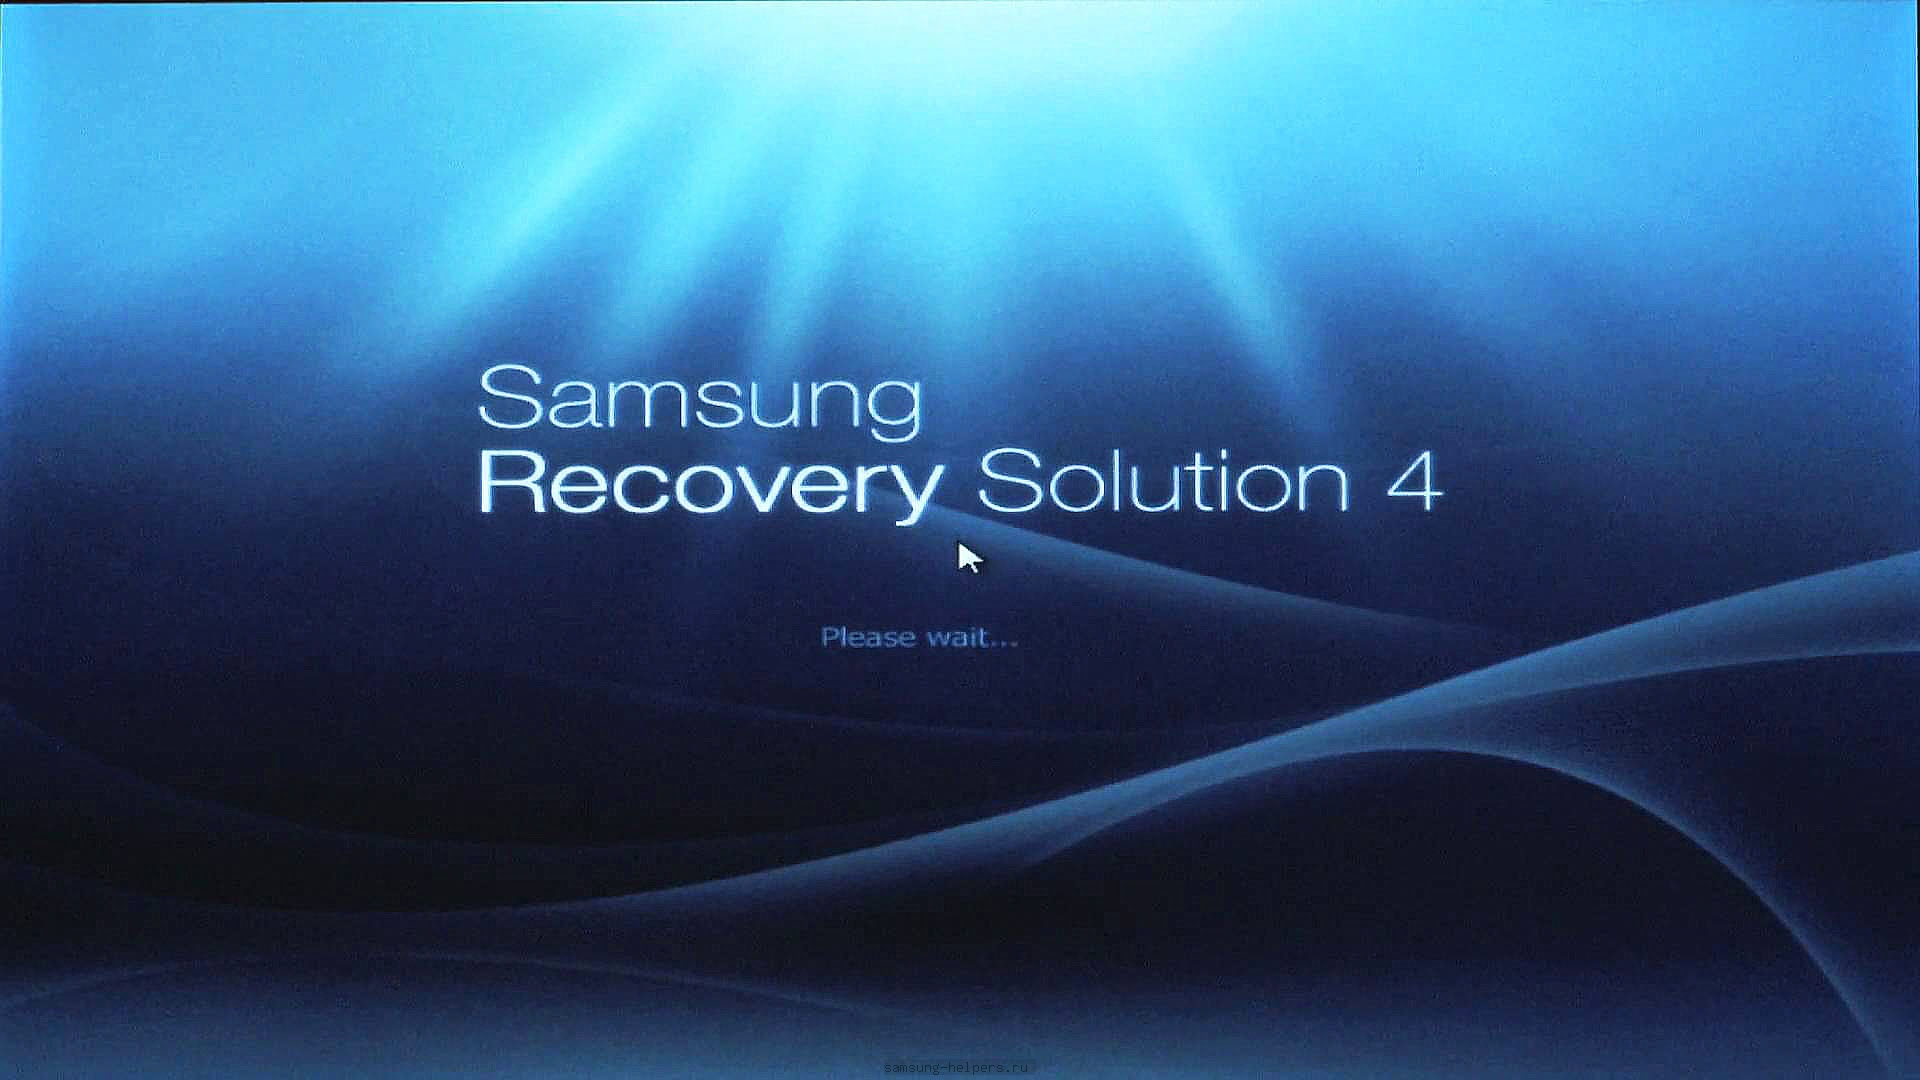 Запускаем Samsung Recovery Solution